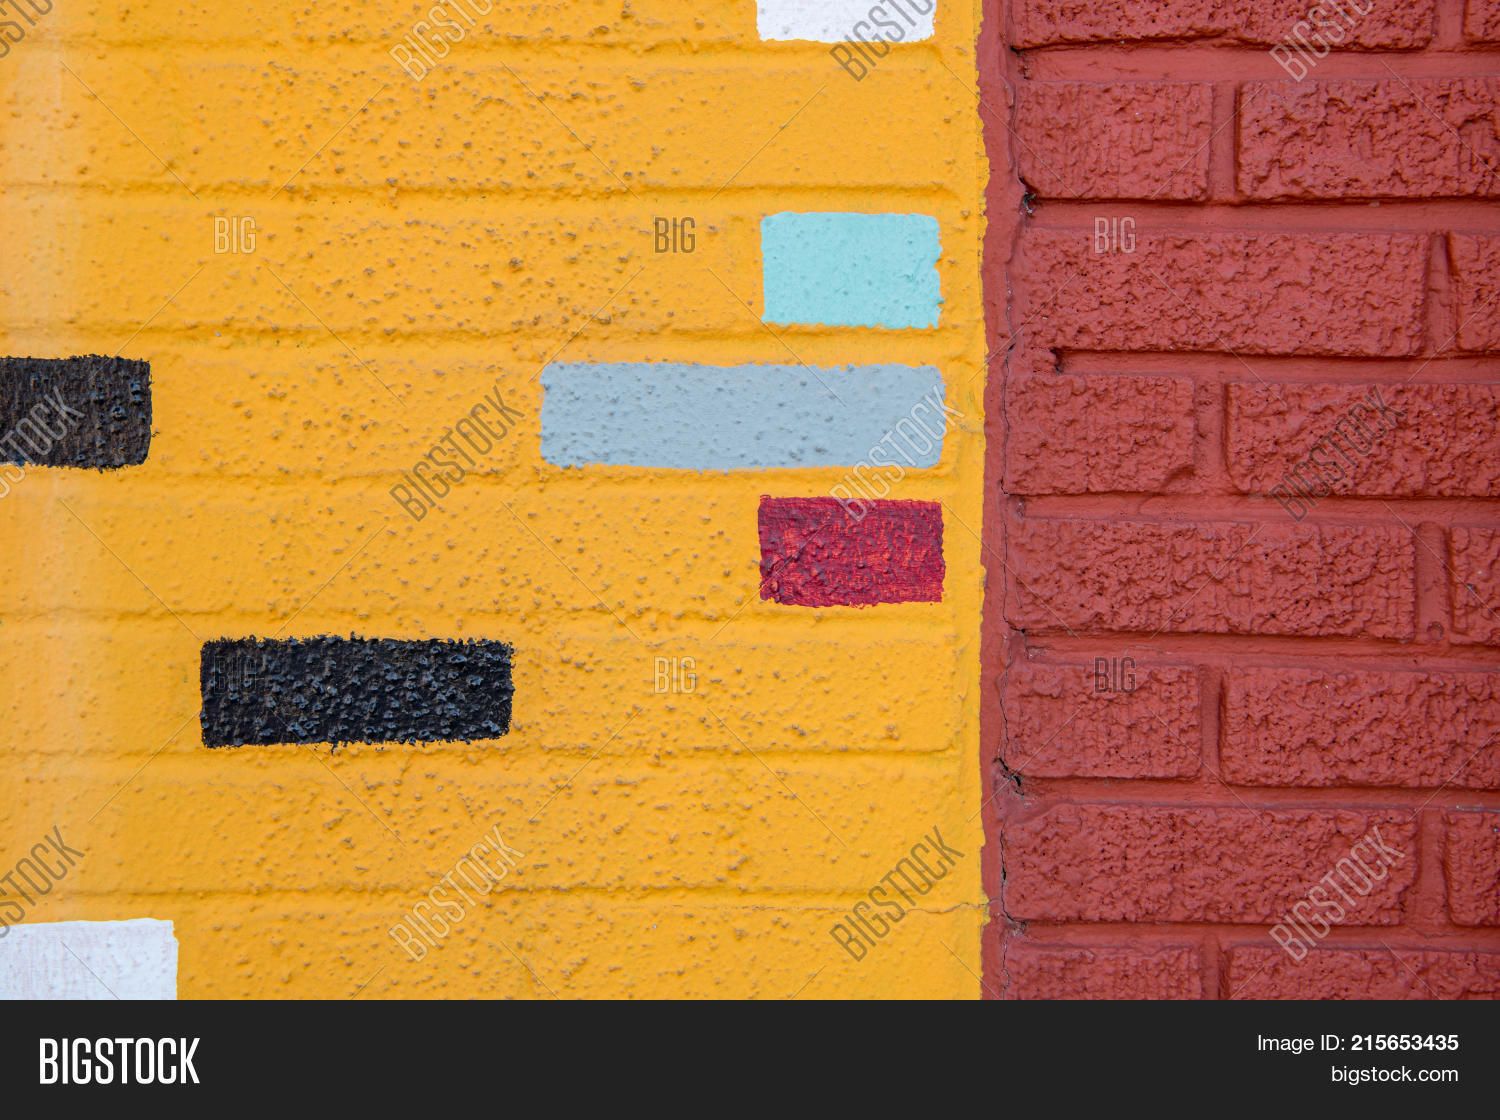 Colorful Painted Brick Image & Photo (Free Trial) | Bigstock